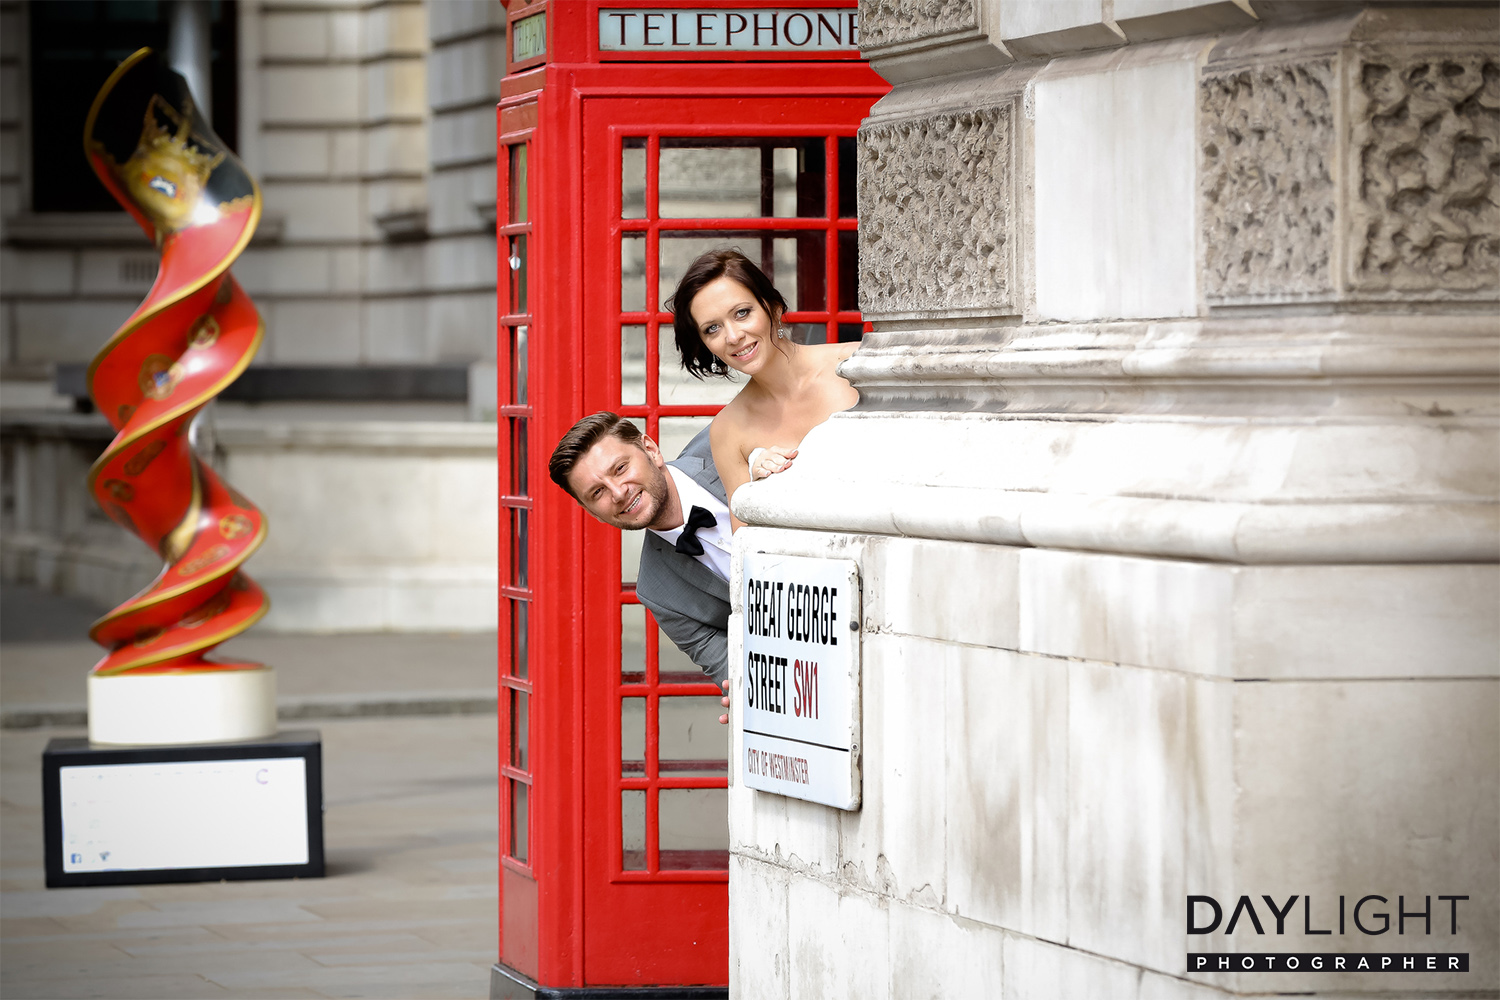 london photographers team for wedding and proposals